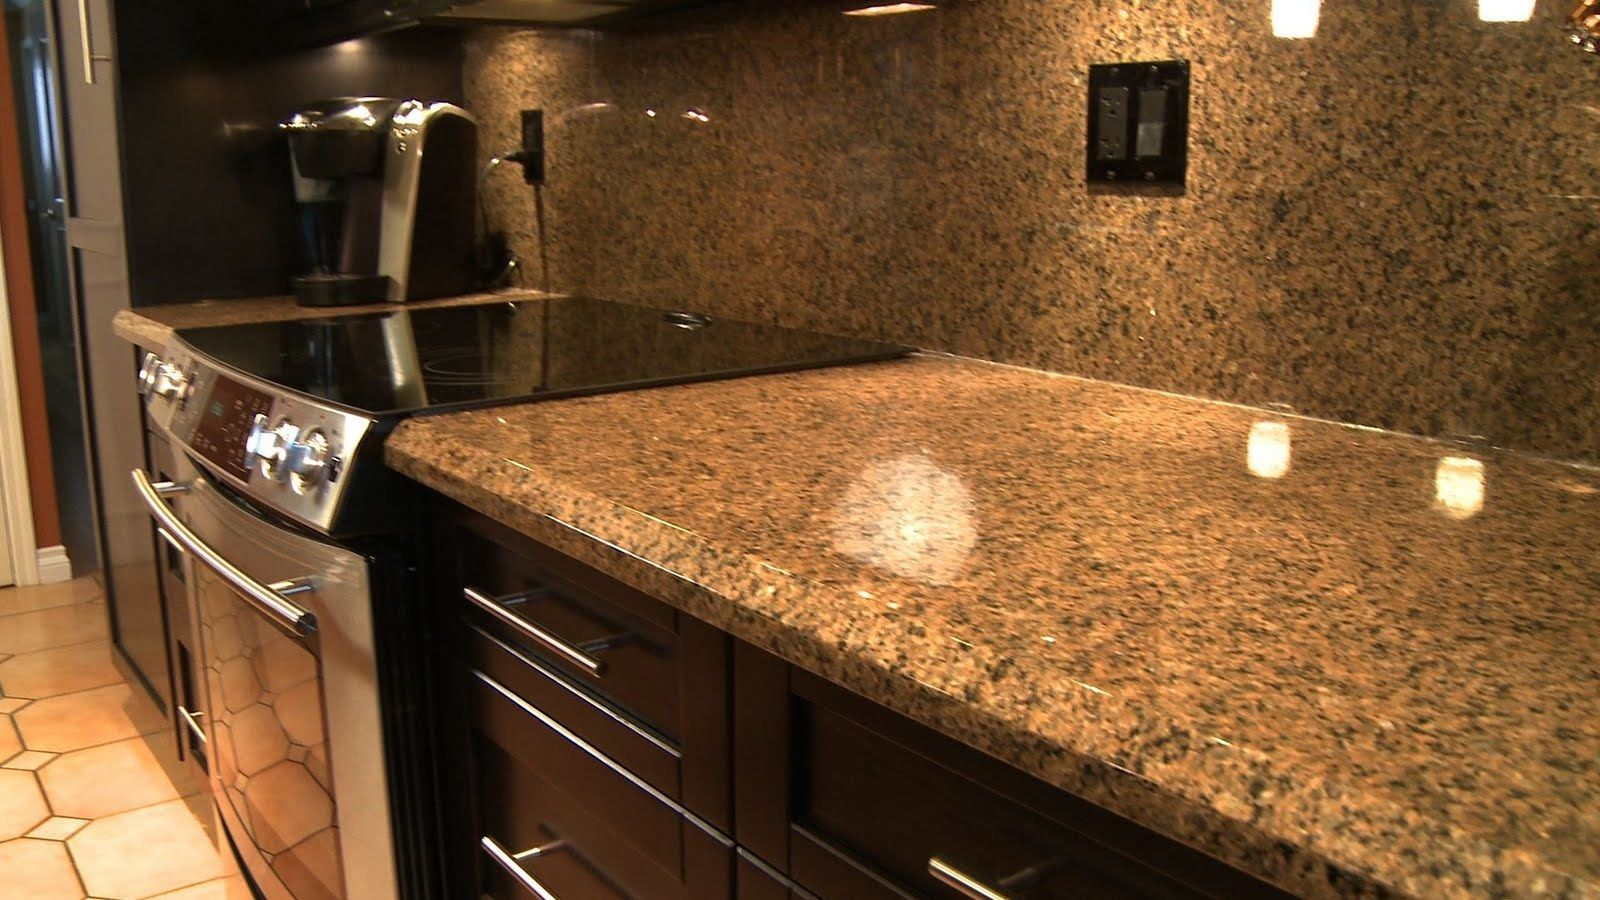 Vinyl Wrapped Countertops And Backsplash!